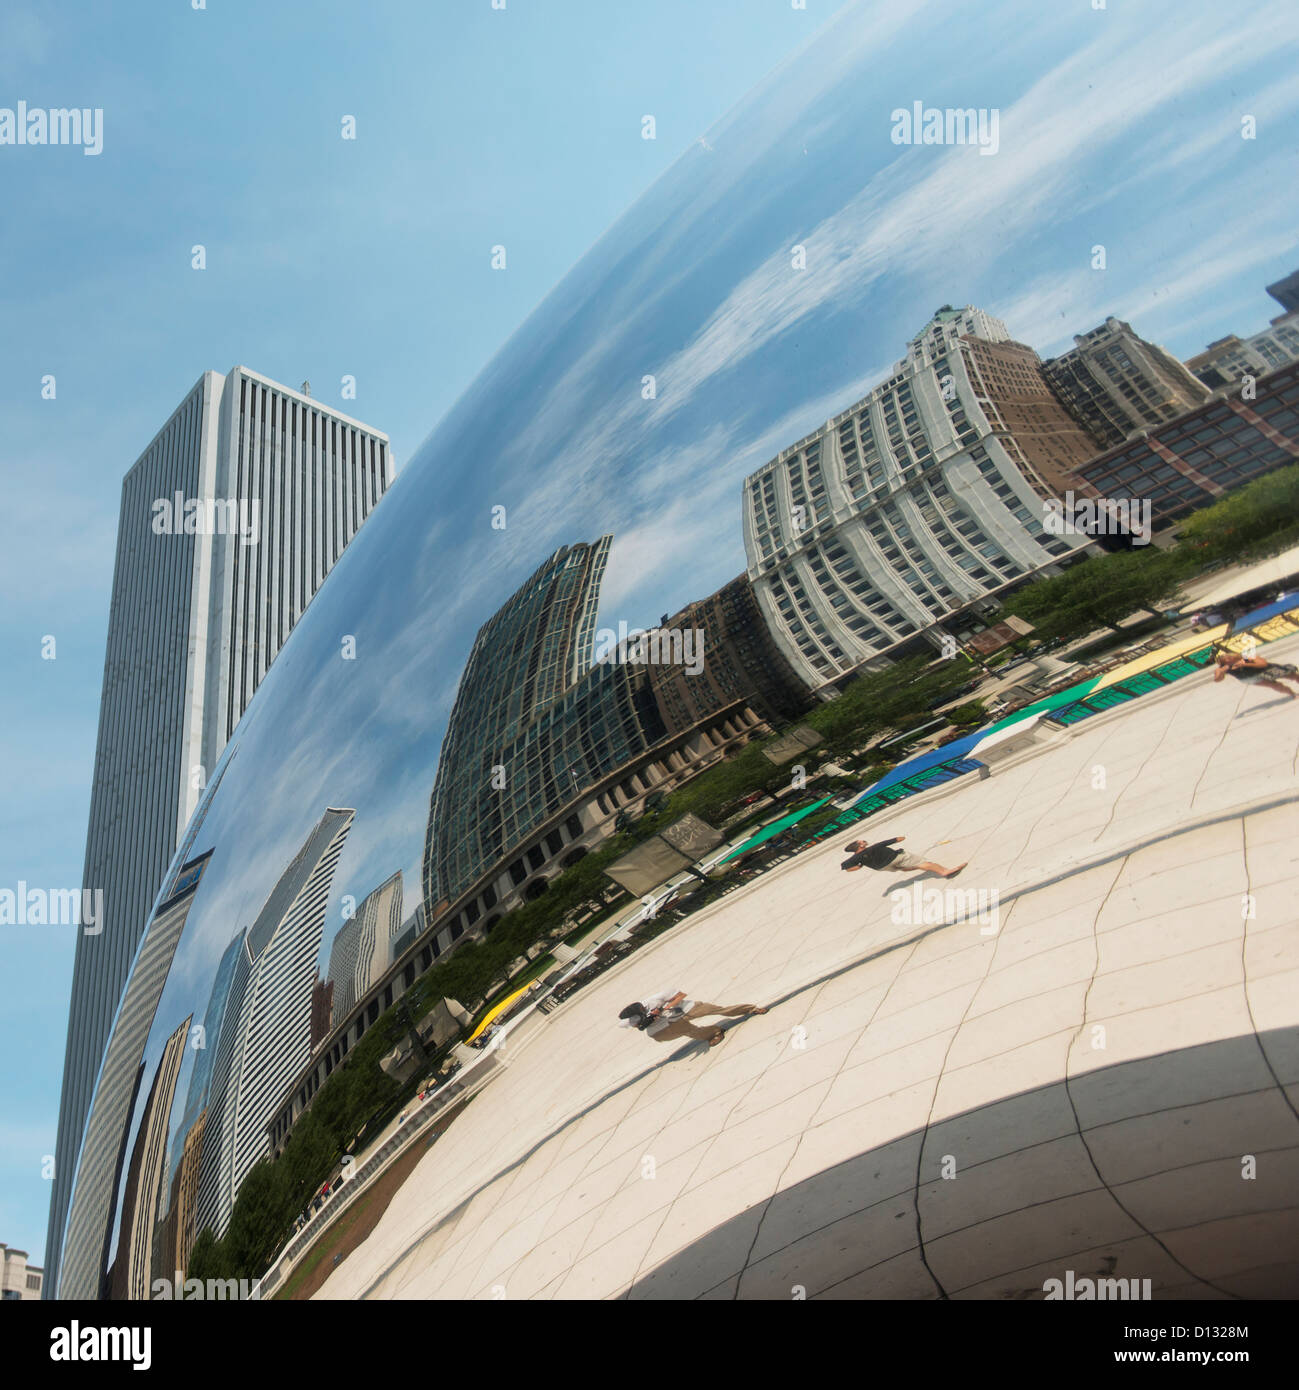 buildings and pedestrians reflected in a silver rounded sculpture